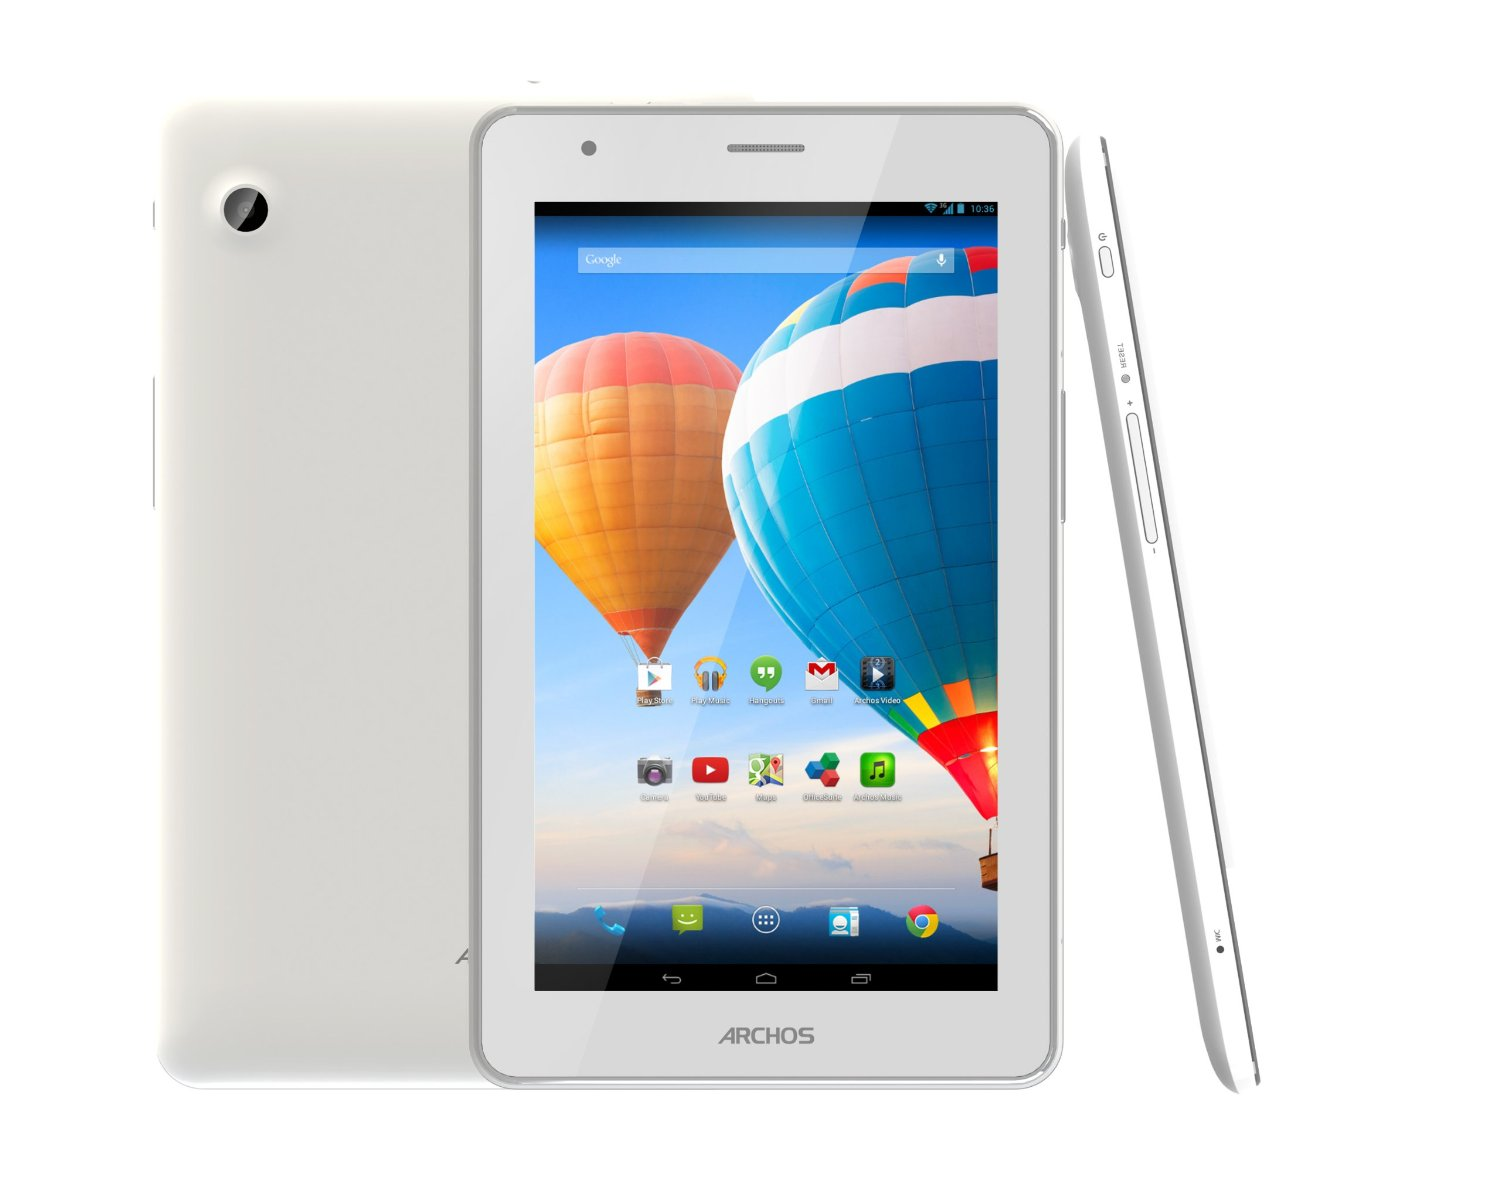 archos 70 xenon 17 8 cm 7 zoll tablet pc 3g umts android. Black Bedroom Furniture Sets. Home Design Ideas